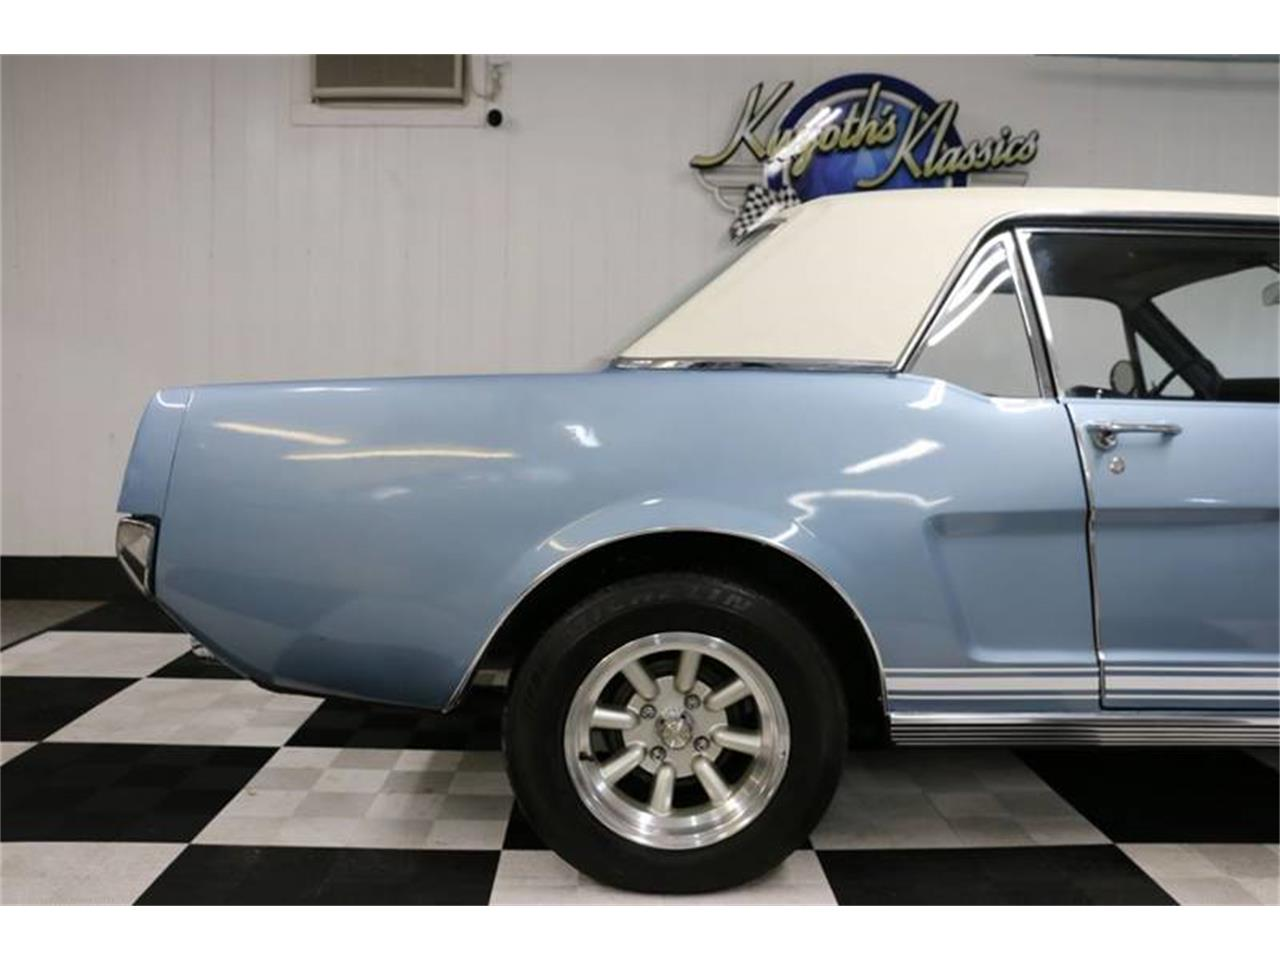 Ford Mustang 1965 prix tout compris